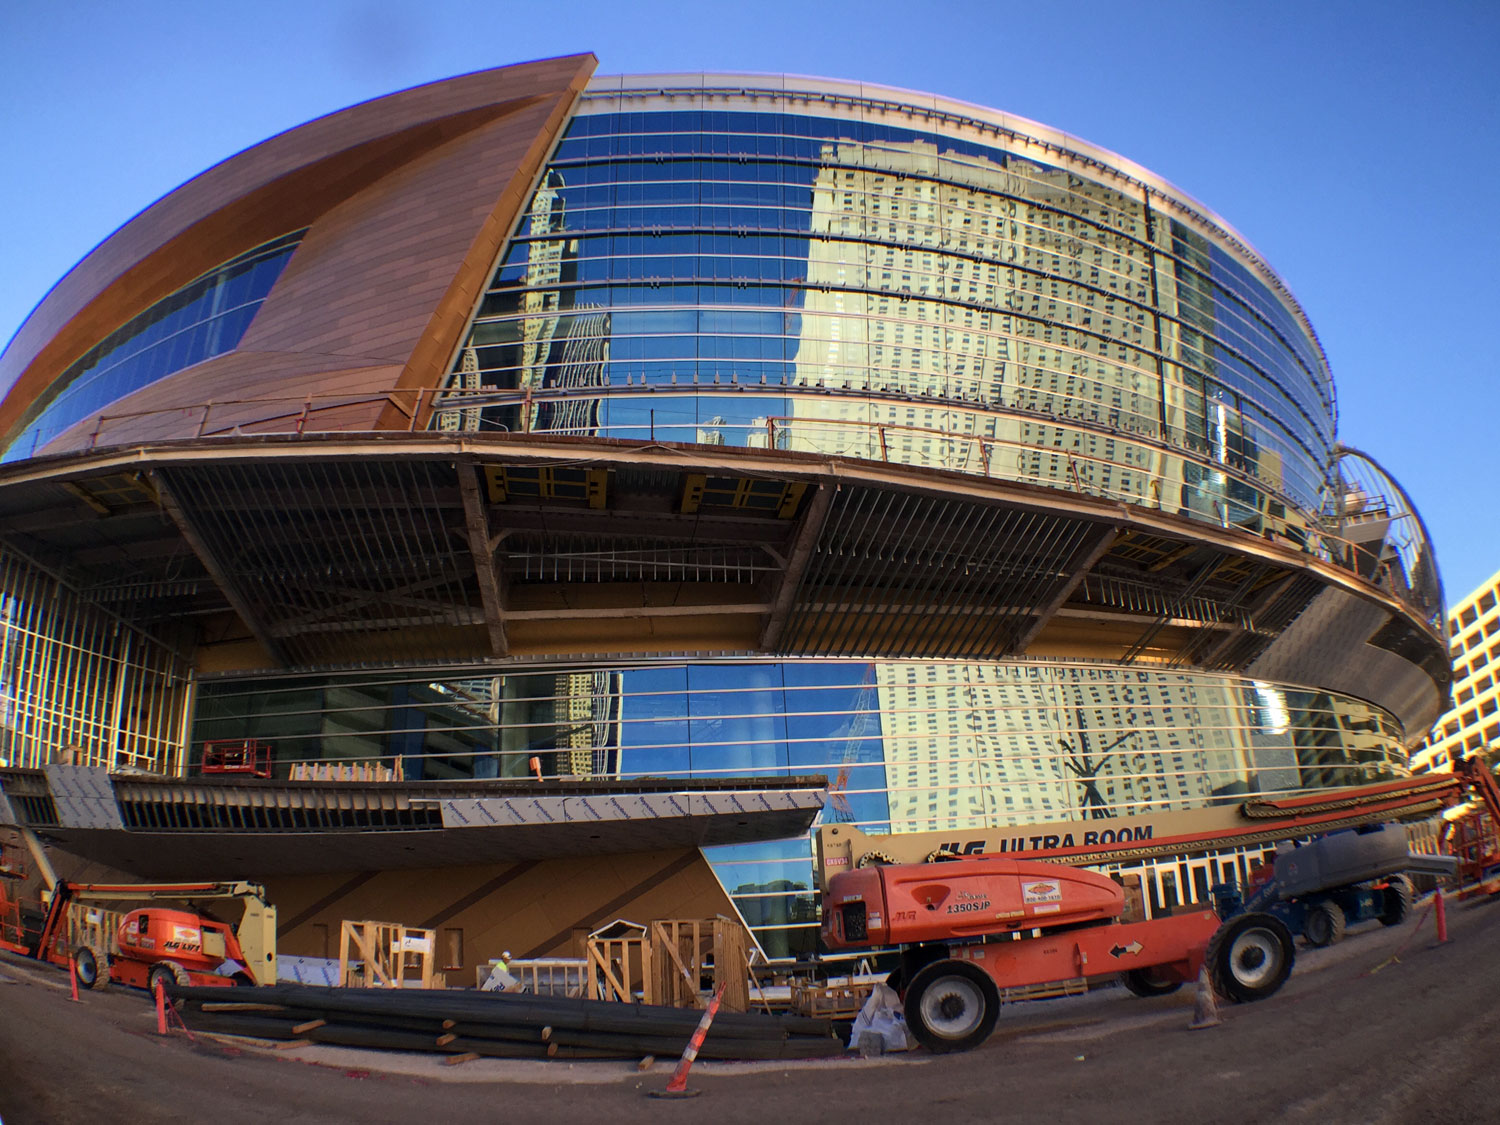 The new 20,000-seat T-Mobile Arena, photo courtesy of Vegas.com.